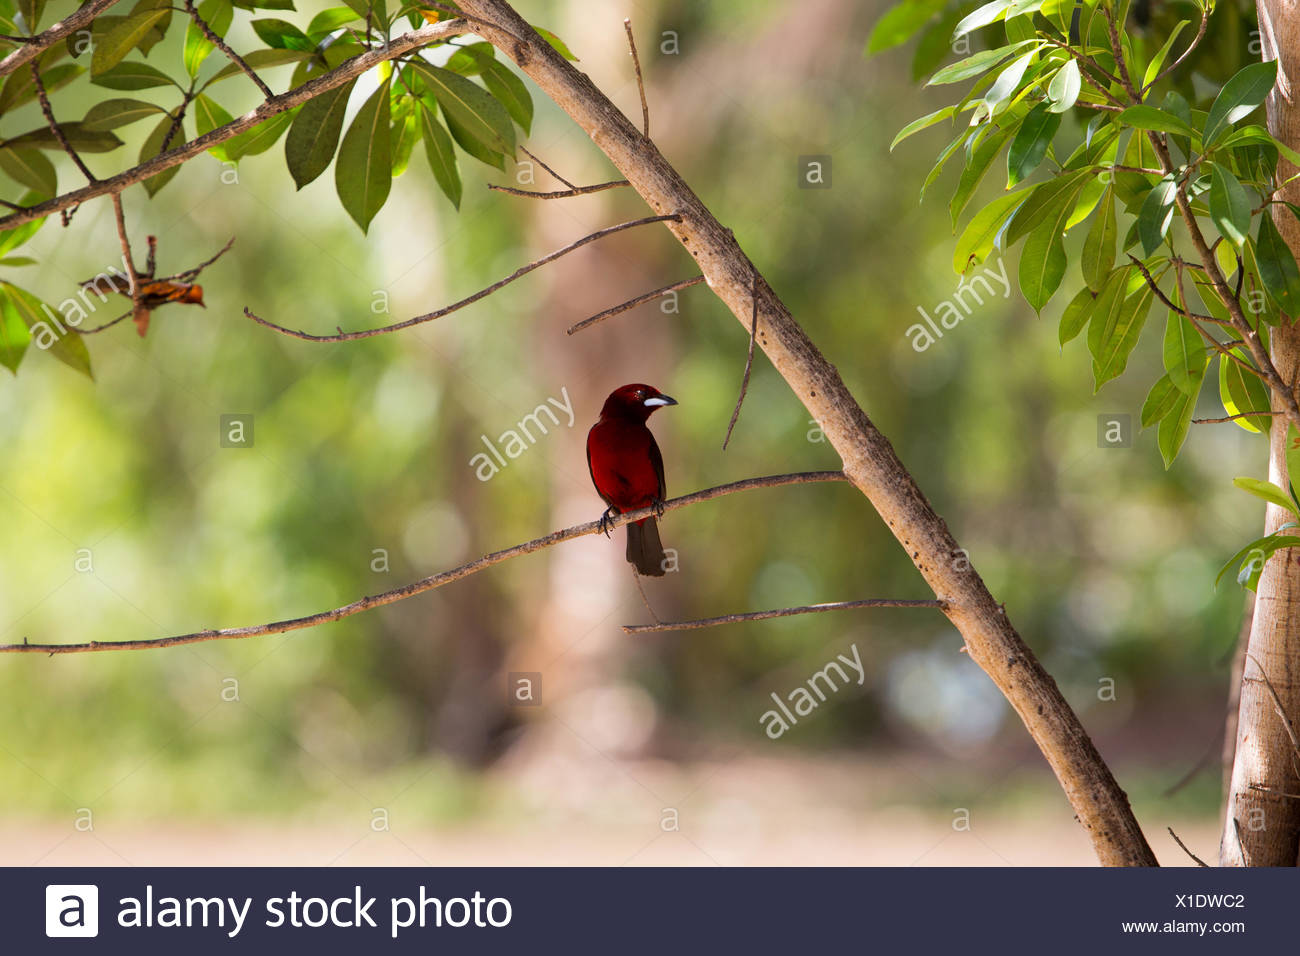 In Isla Coiba National Park,a crimson back tanager bird sits perched on a tree limb. - Stock Image